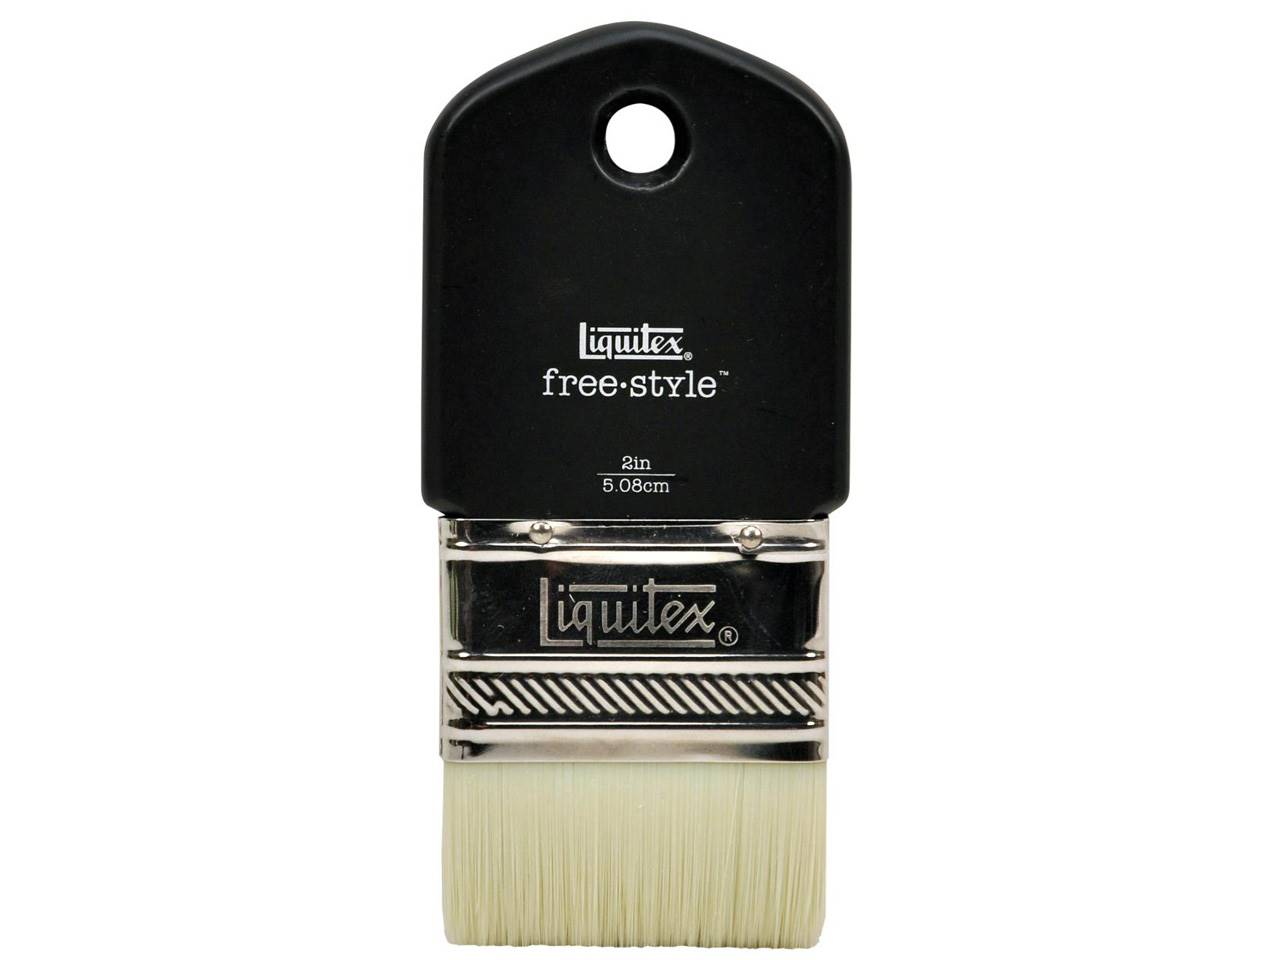 Liquitex Brosse Free Style Palette 2